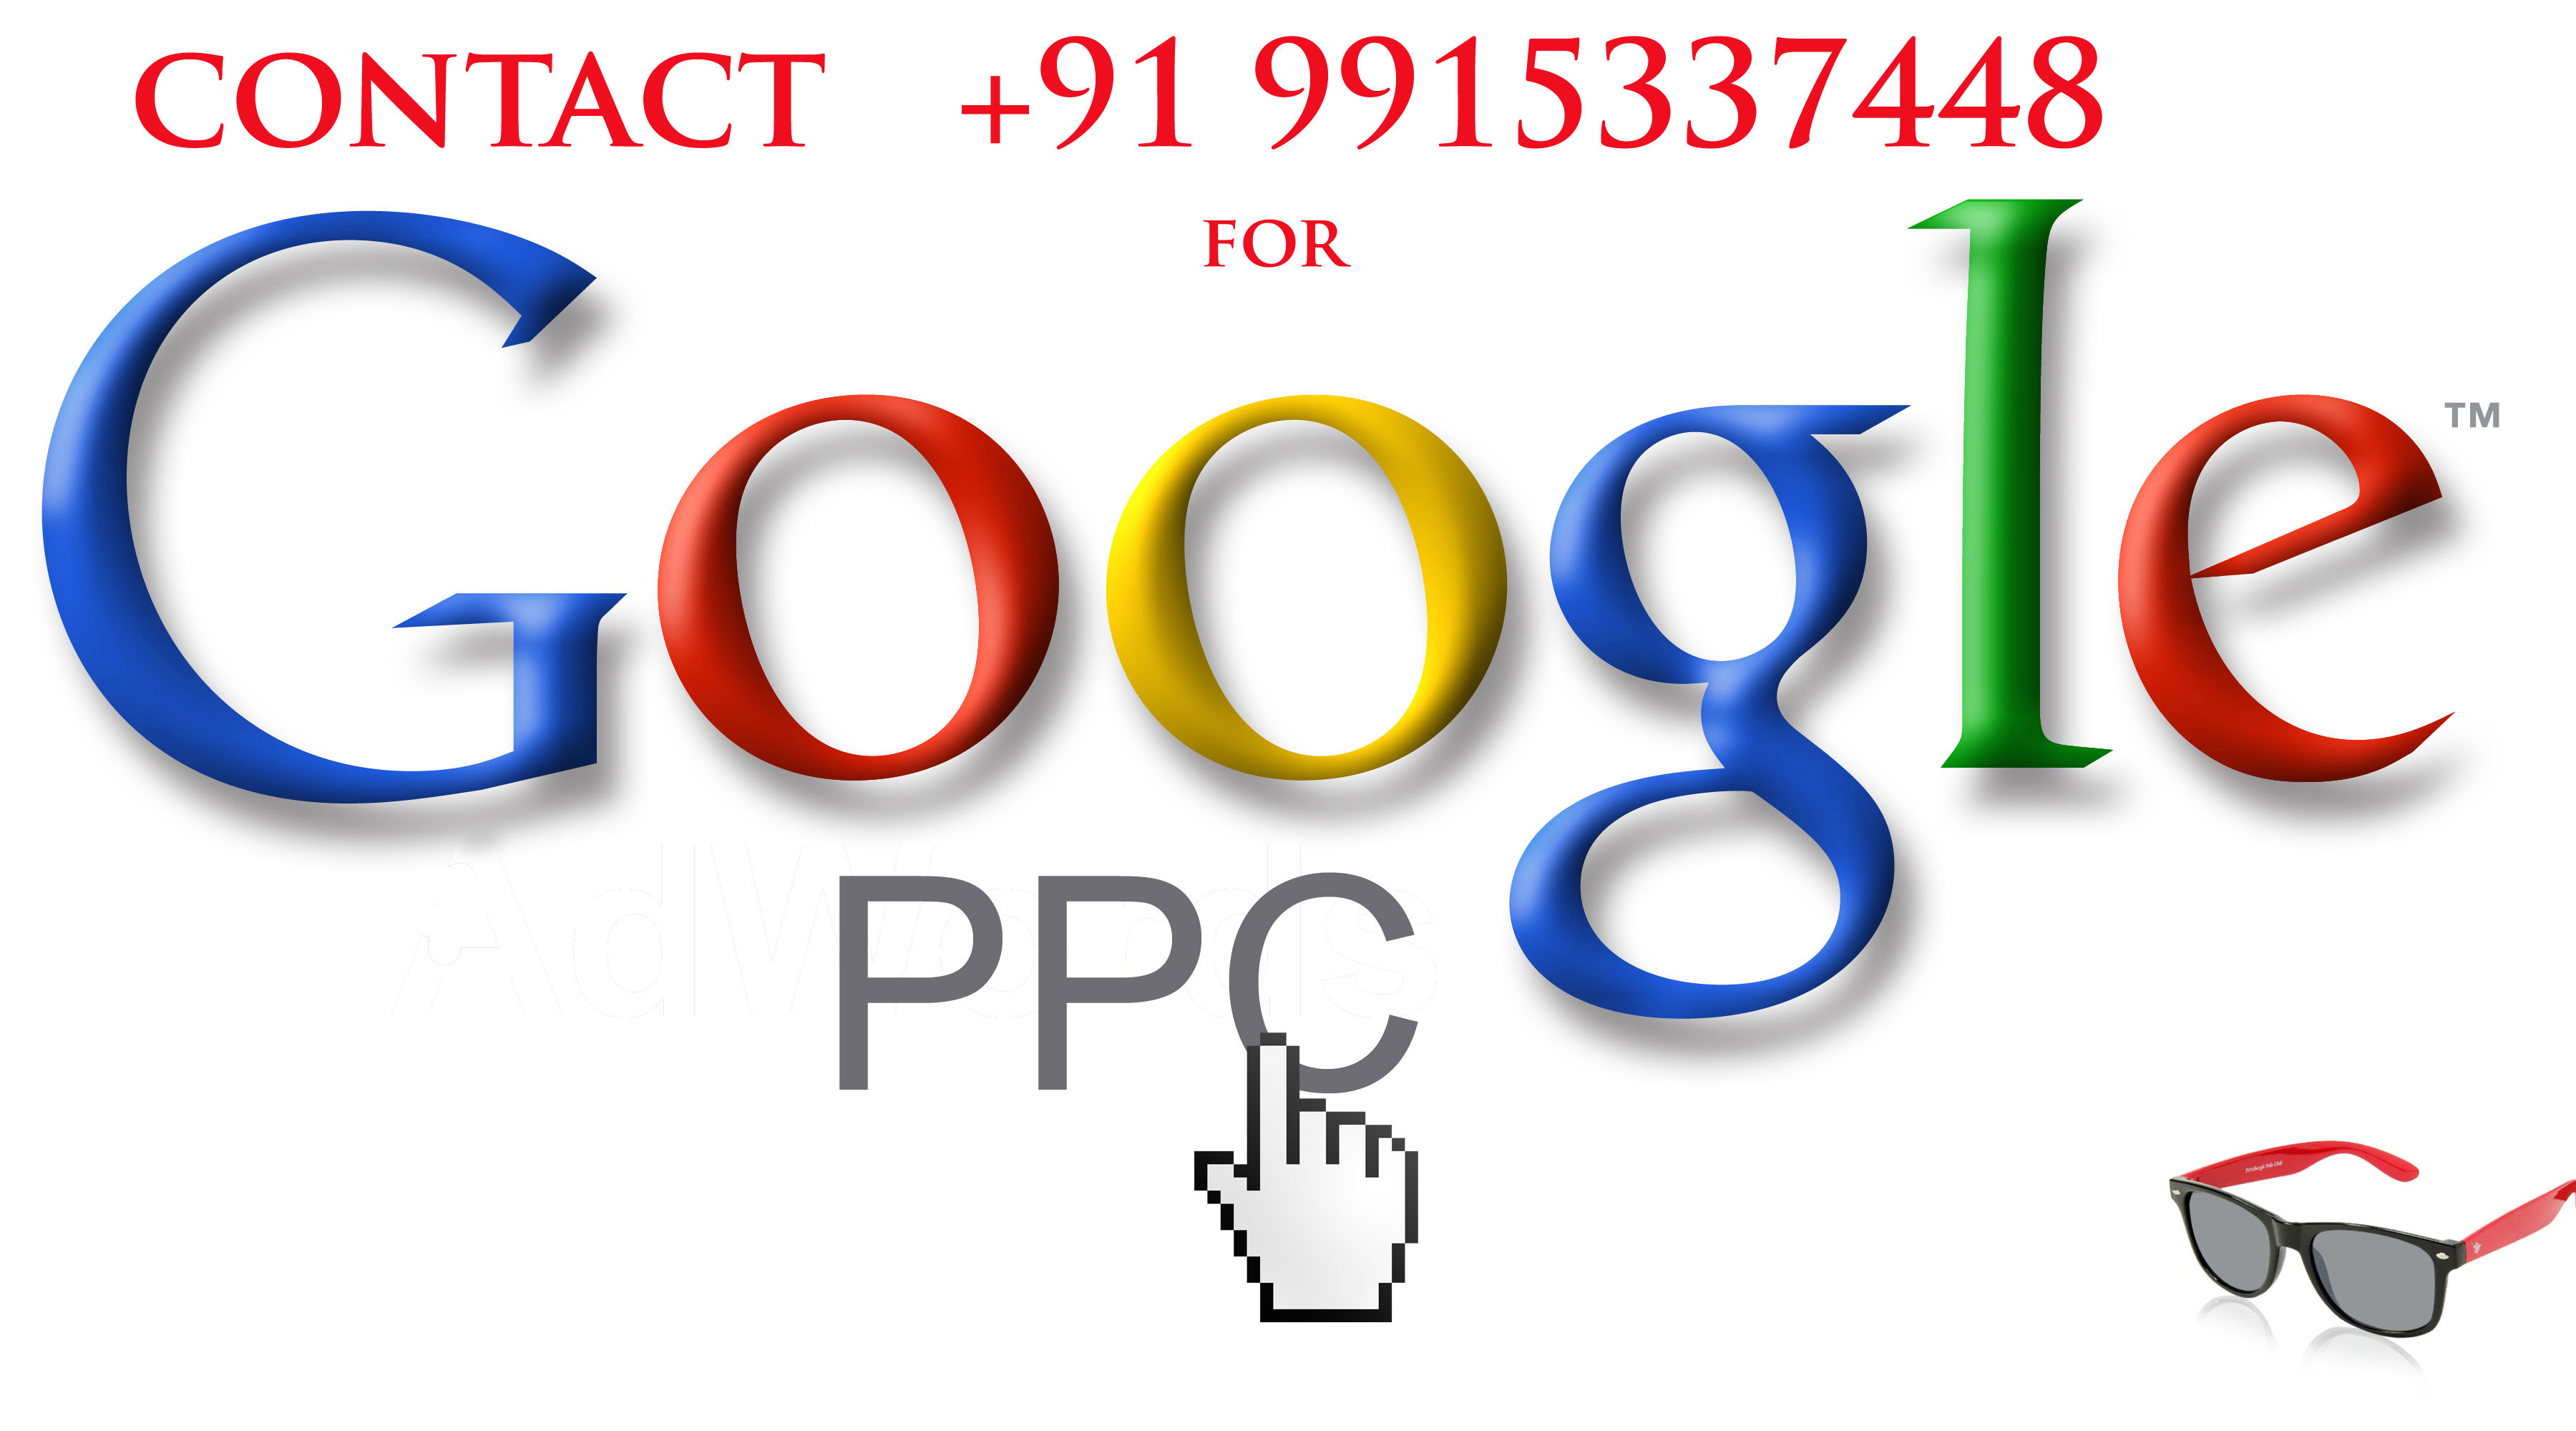 ppc importance List of activities of the ppc department in the apparel industry.